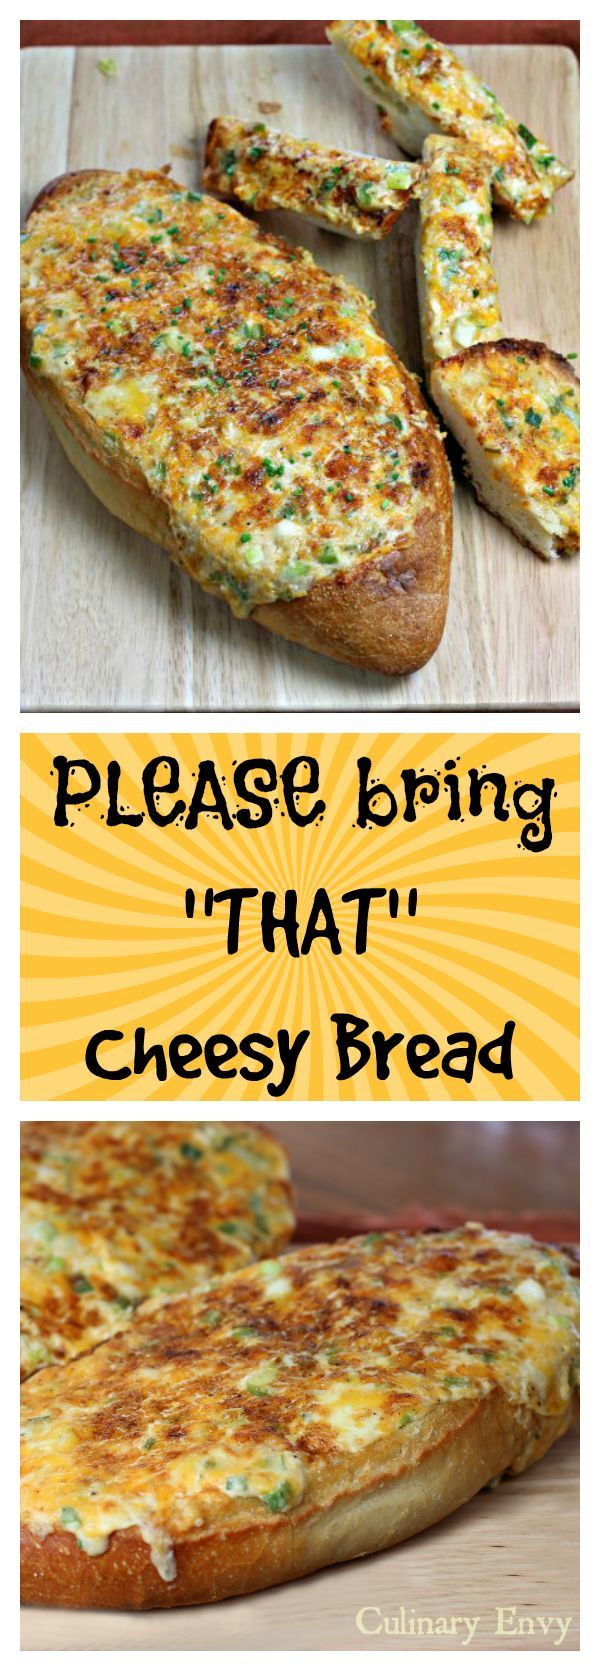 PLEASE bring THAT Cheesy Bread is crunchy, gooey, and ridiculously flavorful.  A little DIFFERENT from all the rest!  People are always asking for this recipe.  This is the one they will remember.